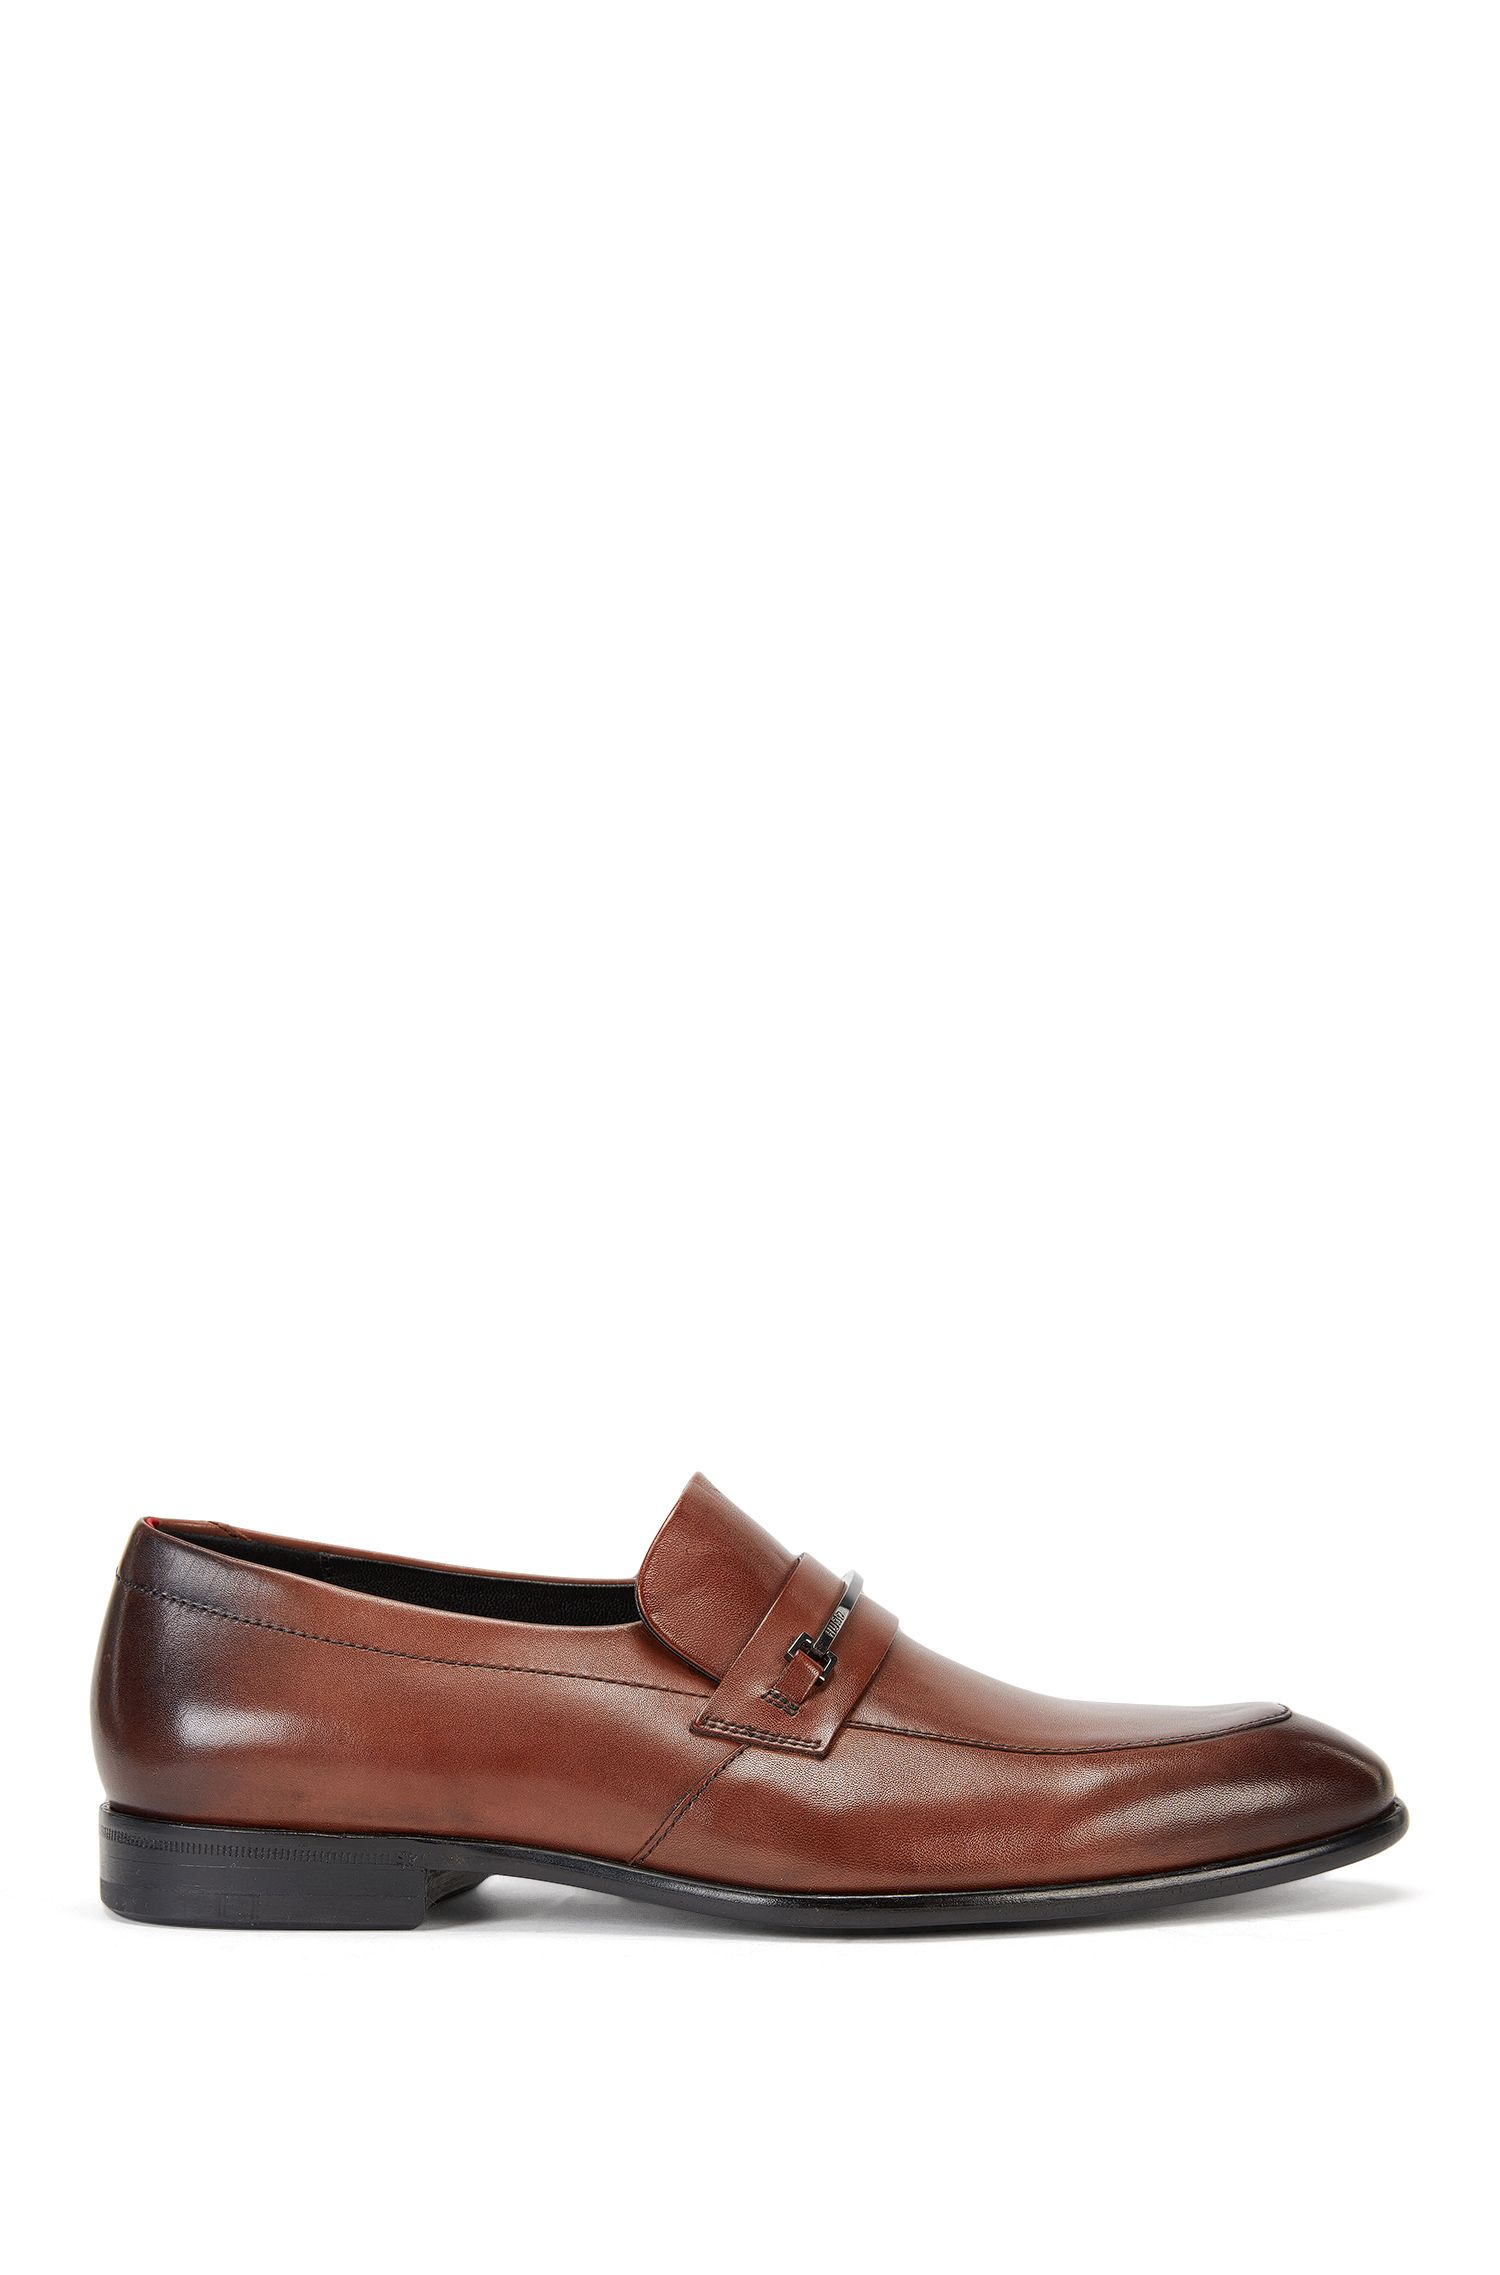 Horse-Bit Leather Loafer | Dressapp Loaf Buhw